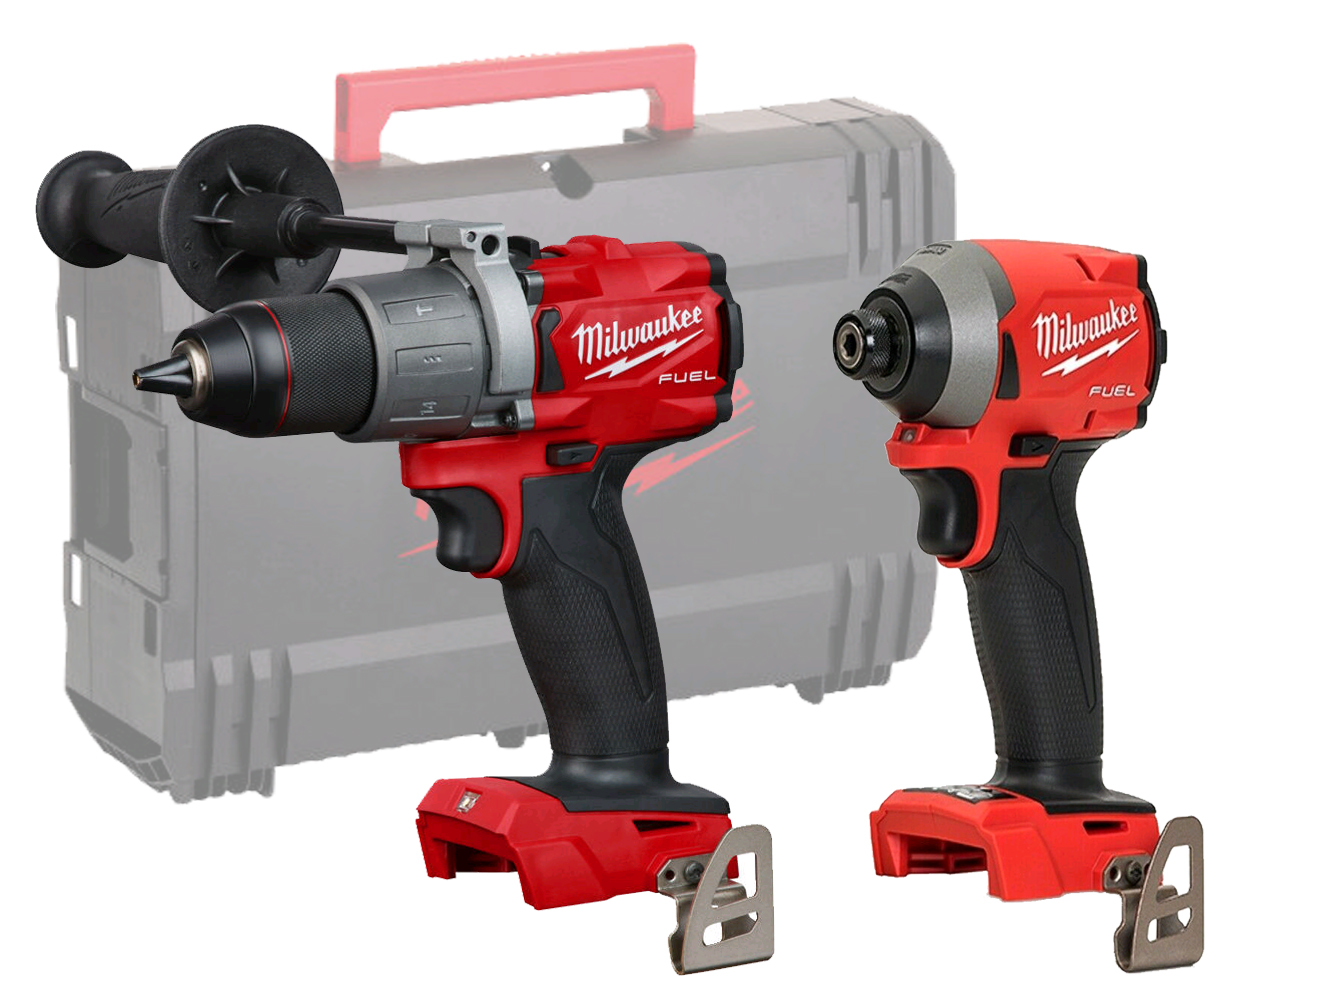 Milwaukee 18V Fuel Brushless Combi & Impact Pack  M18FPD2 + M18FID2 - Machines Only